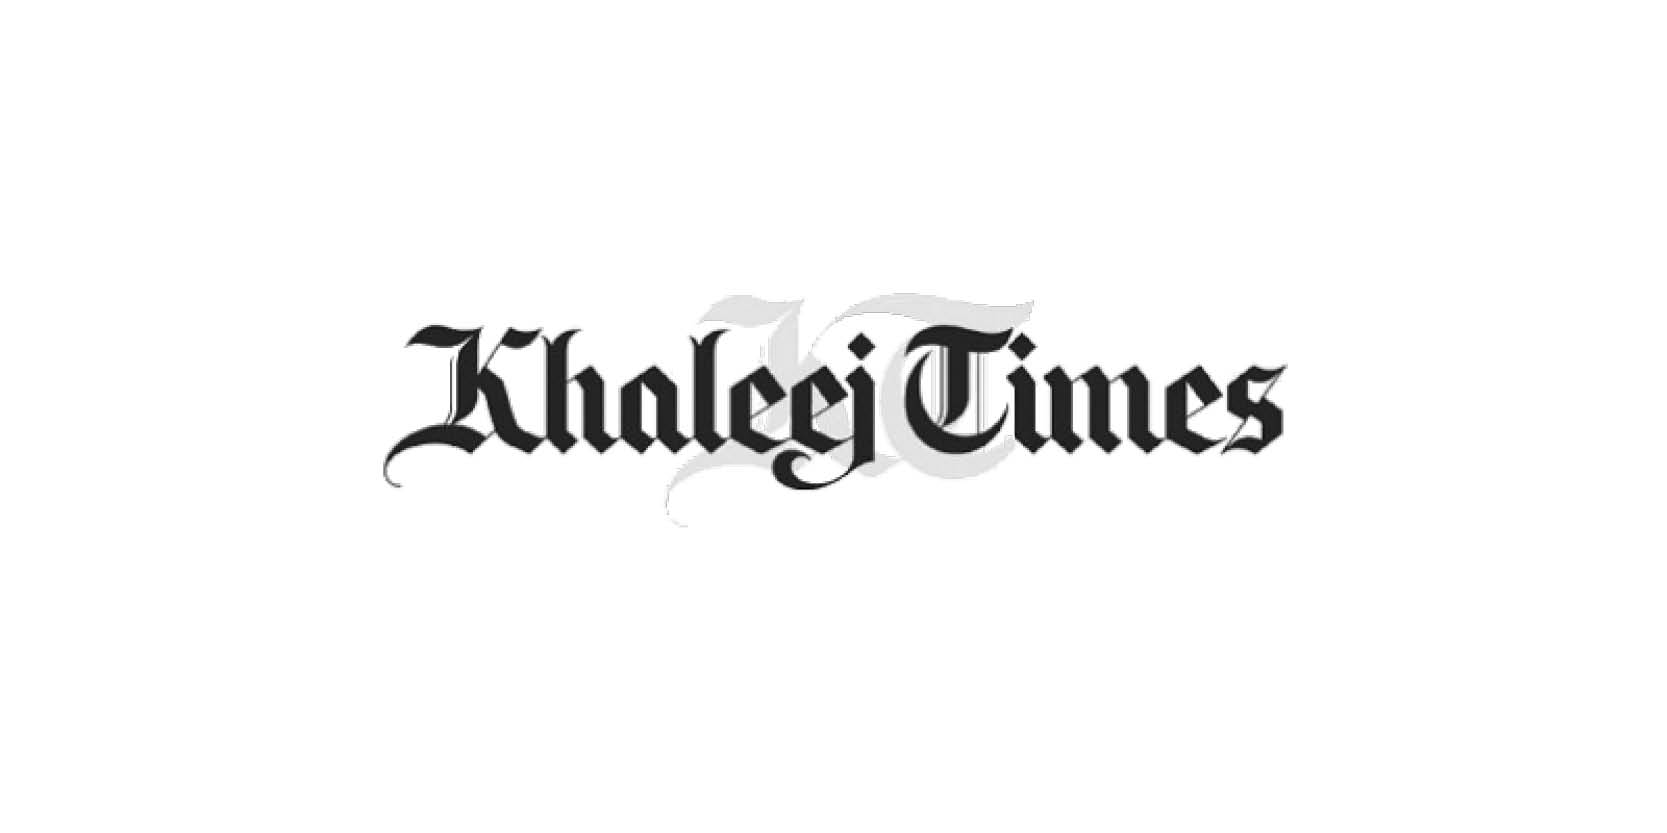 Khaleej Times: You've been hacked